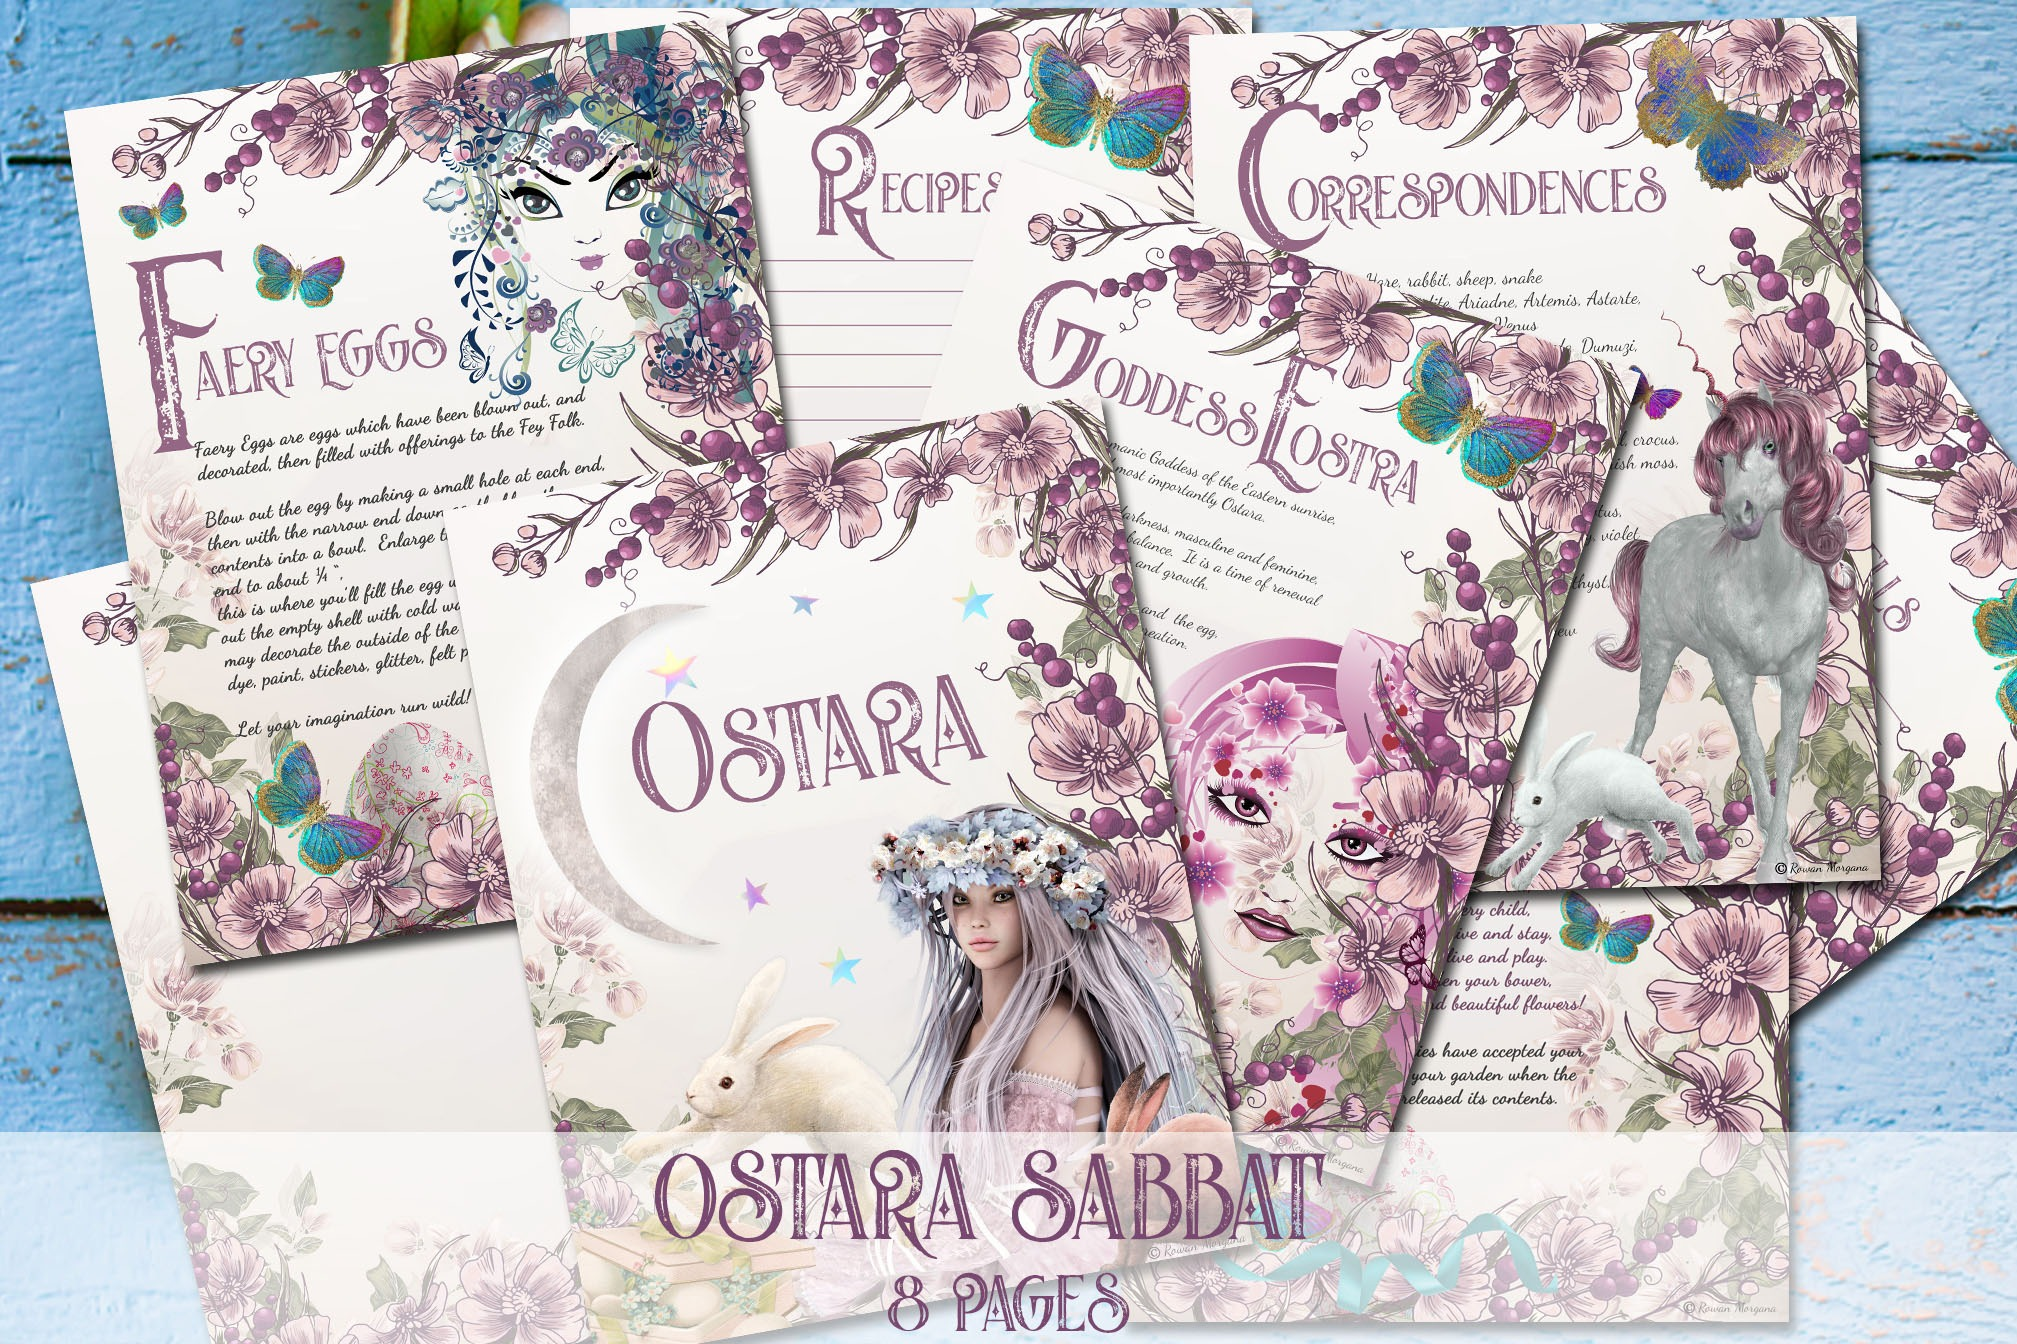 OSTARA SABBAT 8 Pages  for Book of Shadows